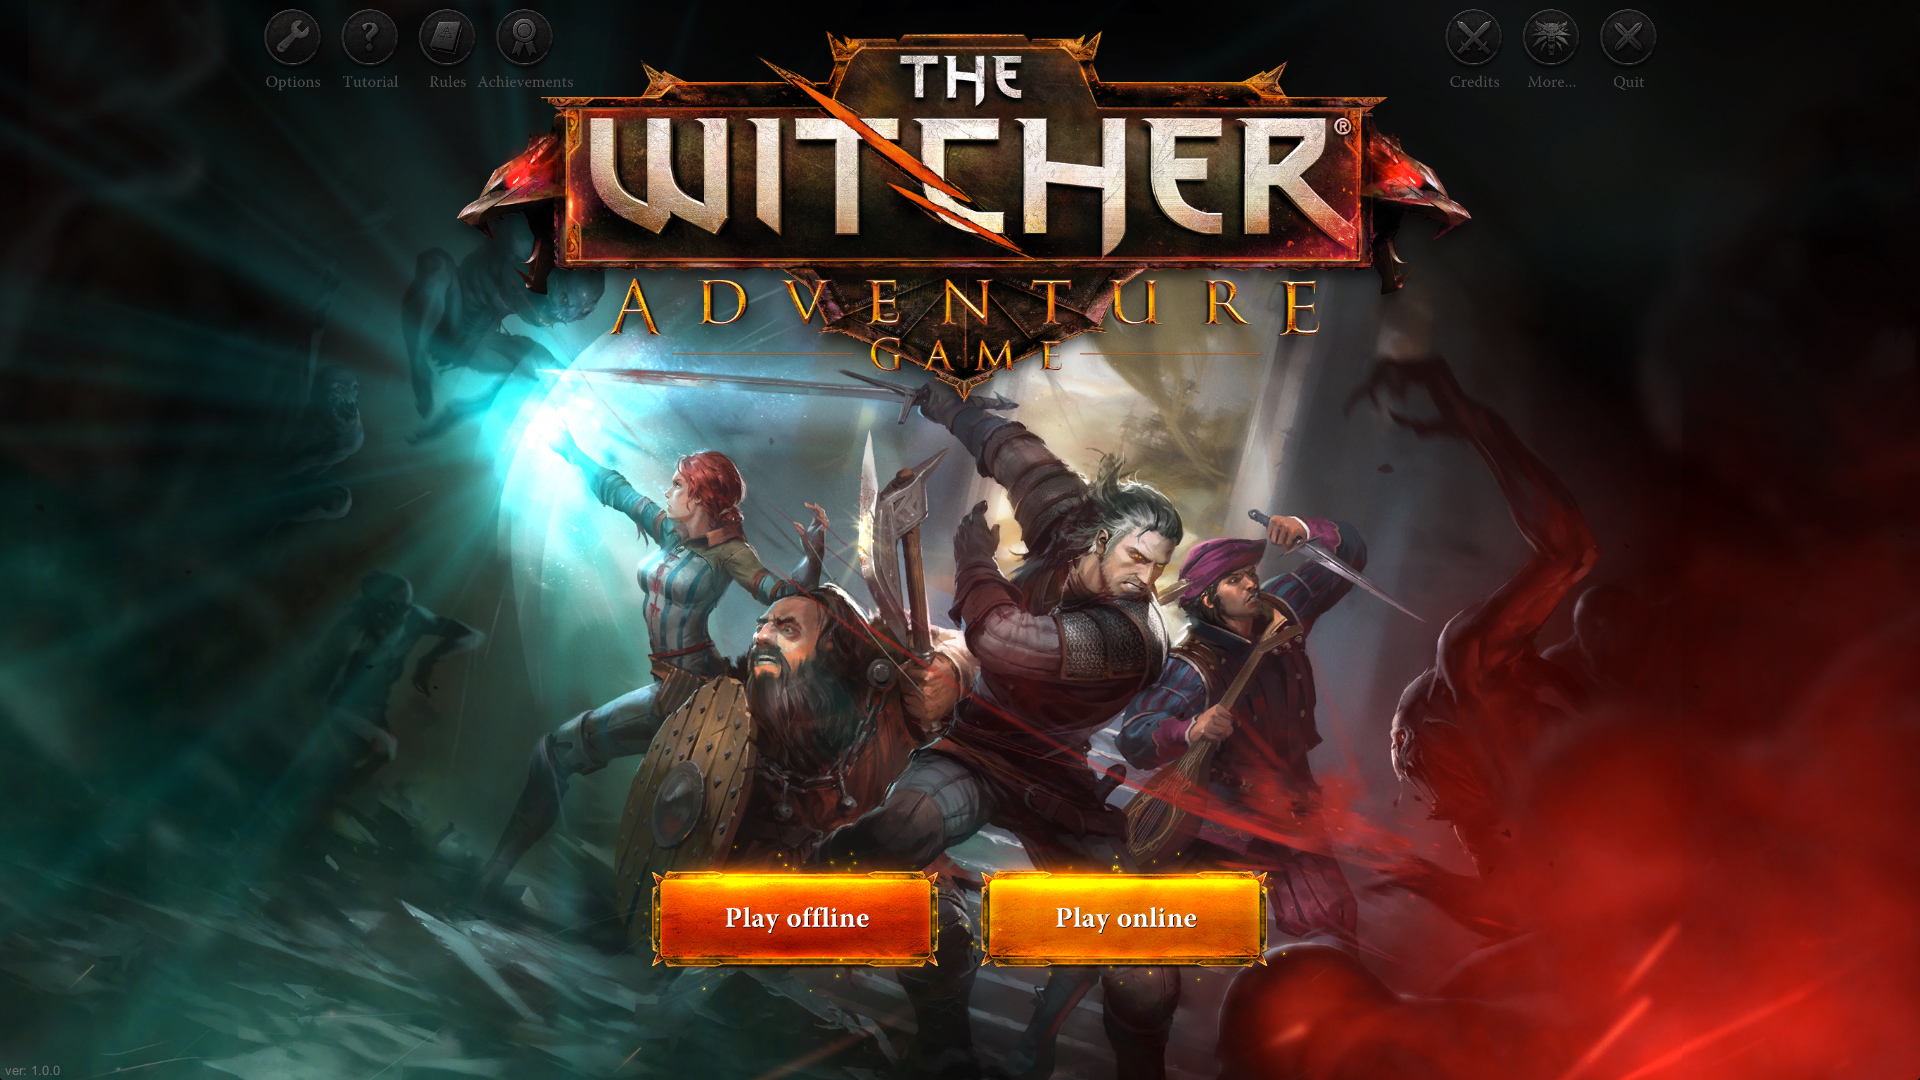 The_Witcher_Adventure_Game__16_-pc-games.jpg